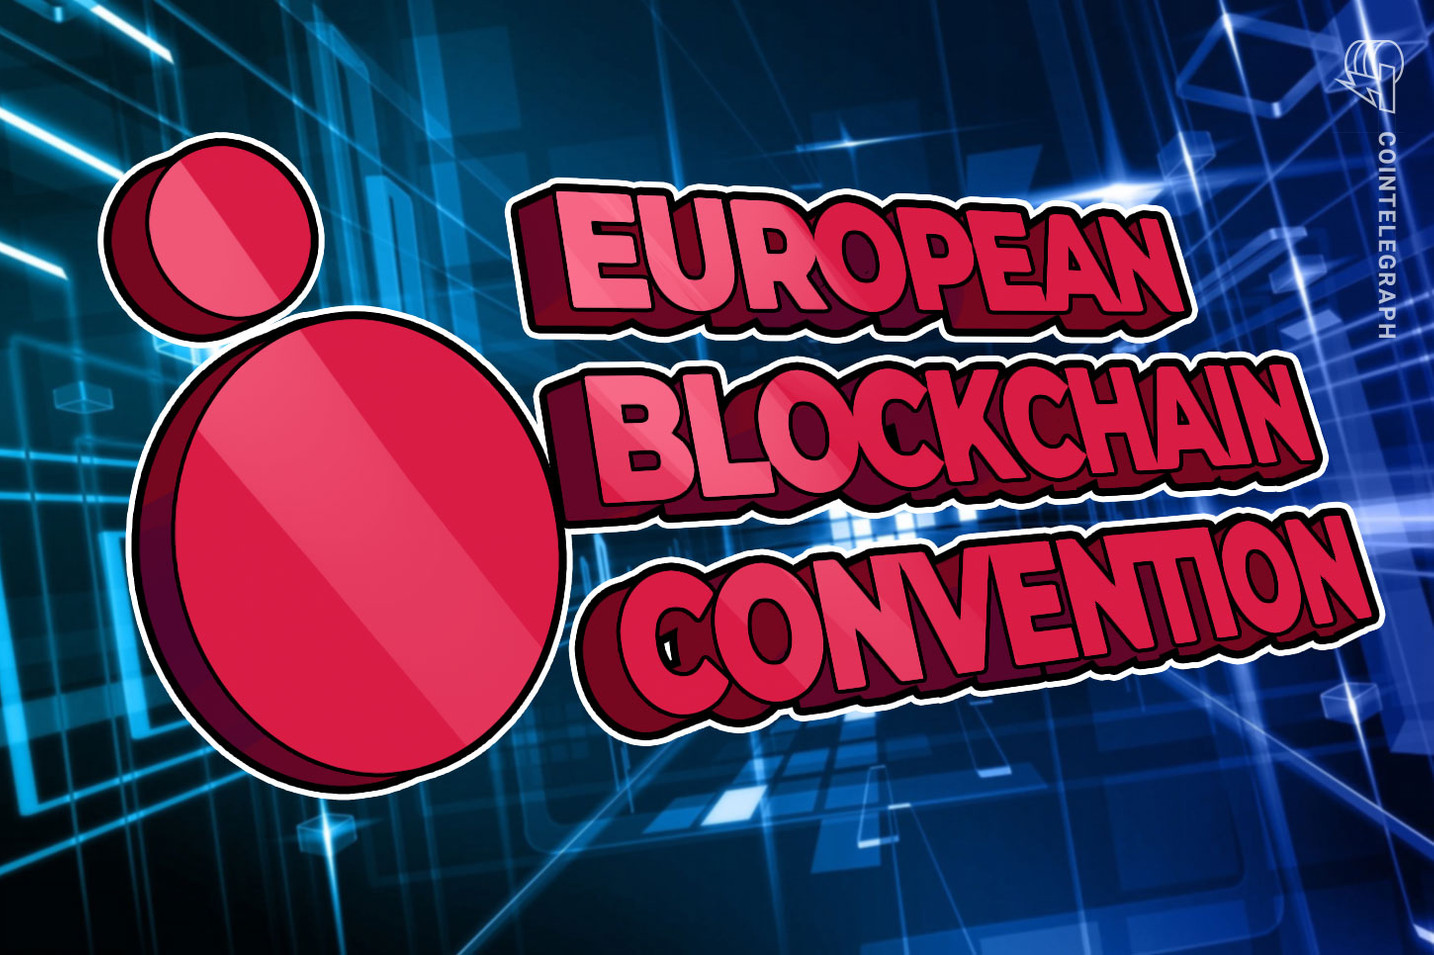 European Blockchain Convention transforms into a huge online event